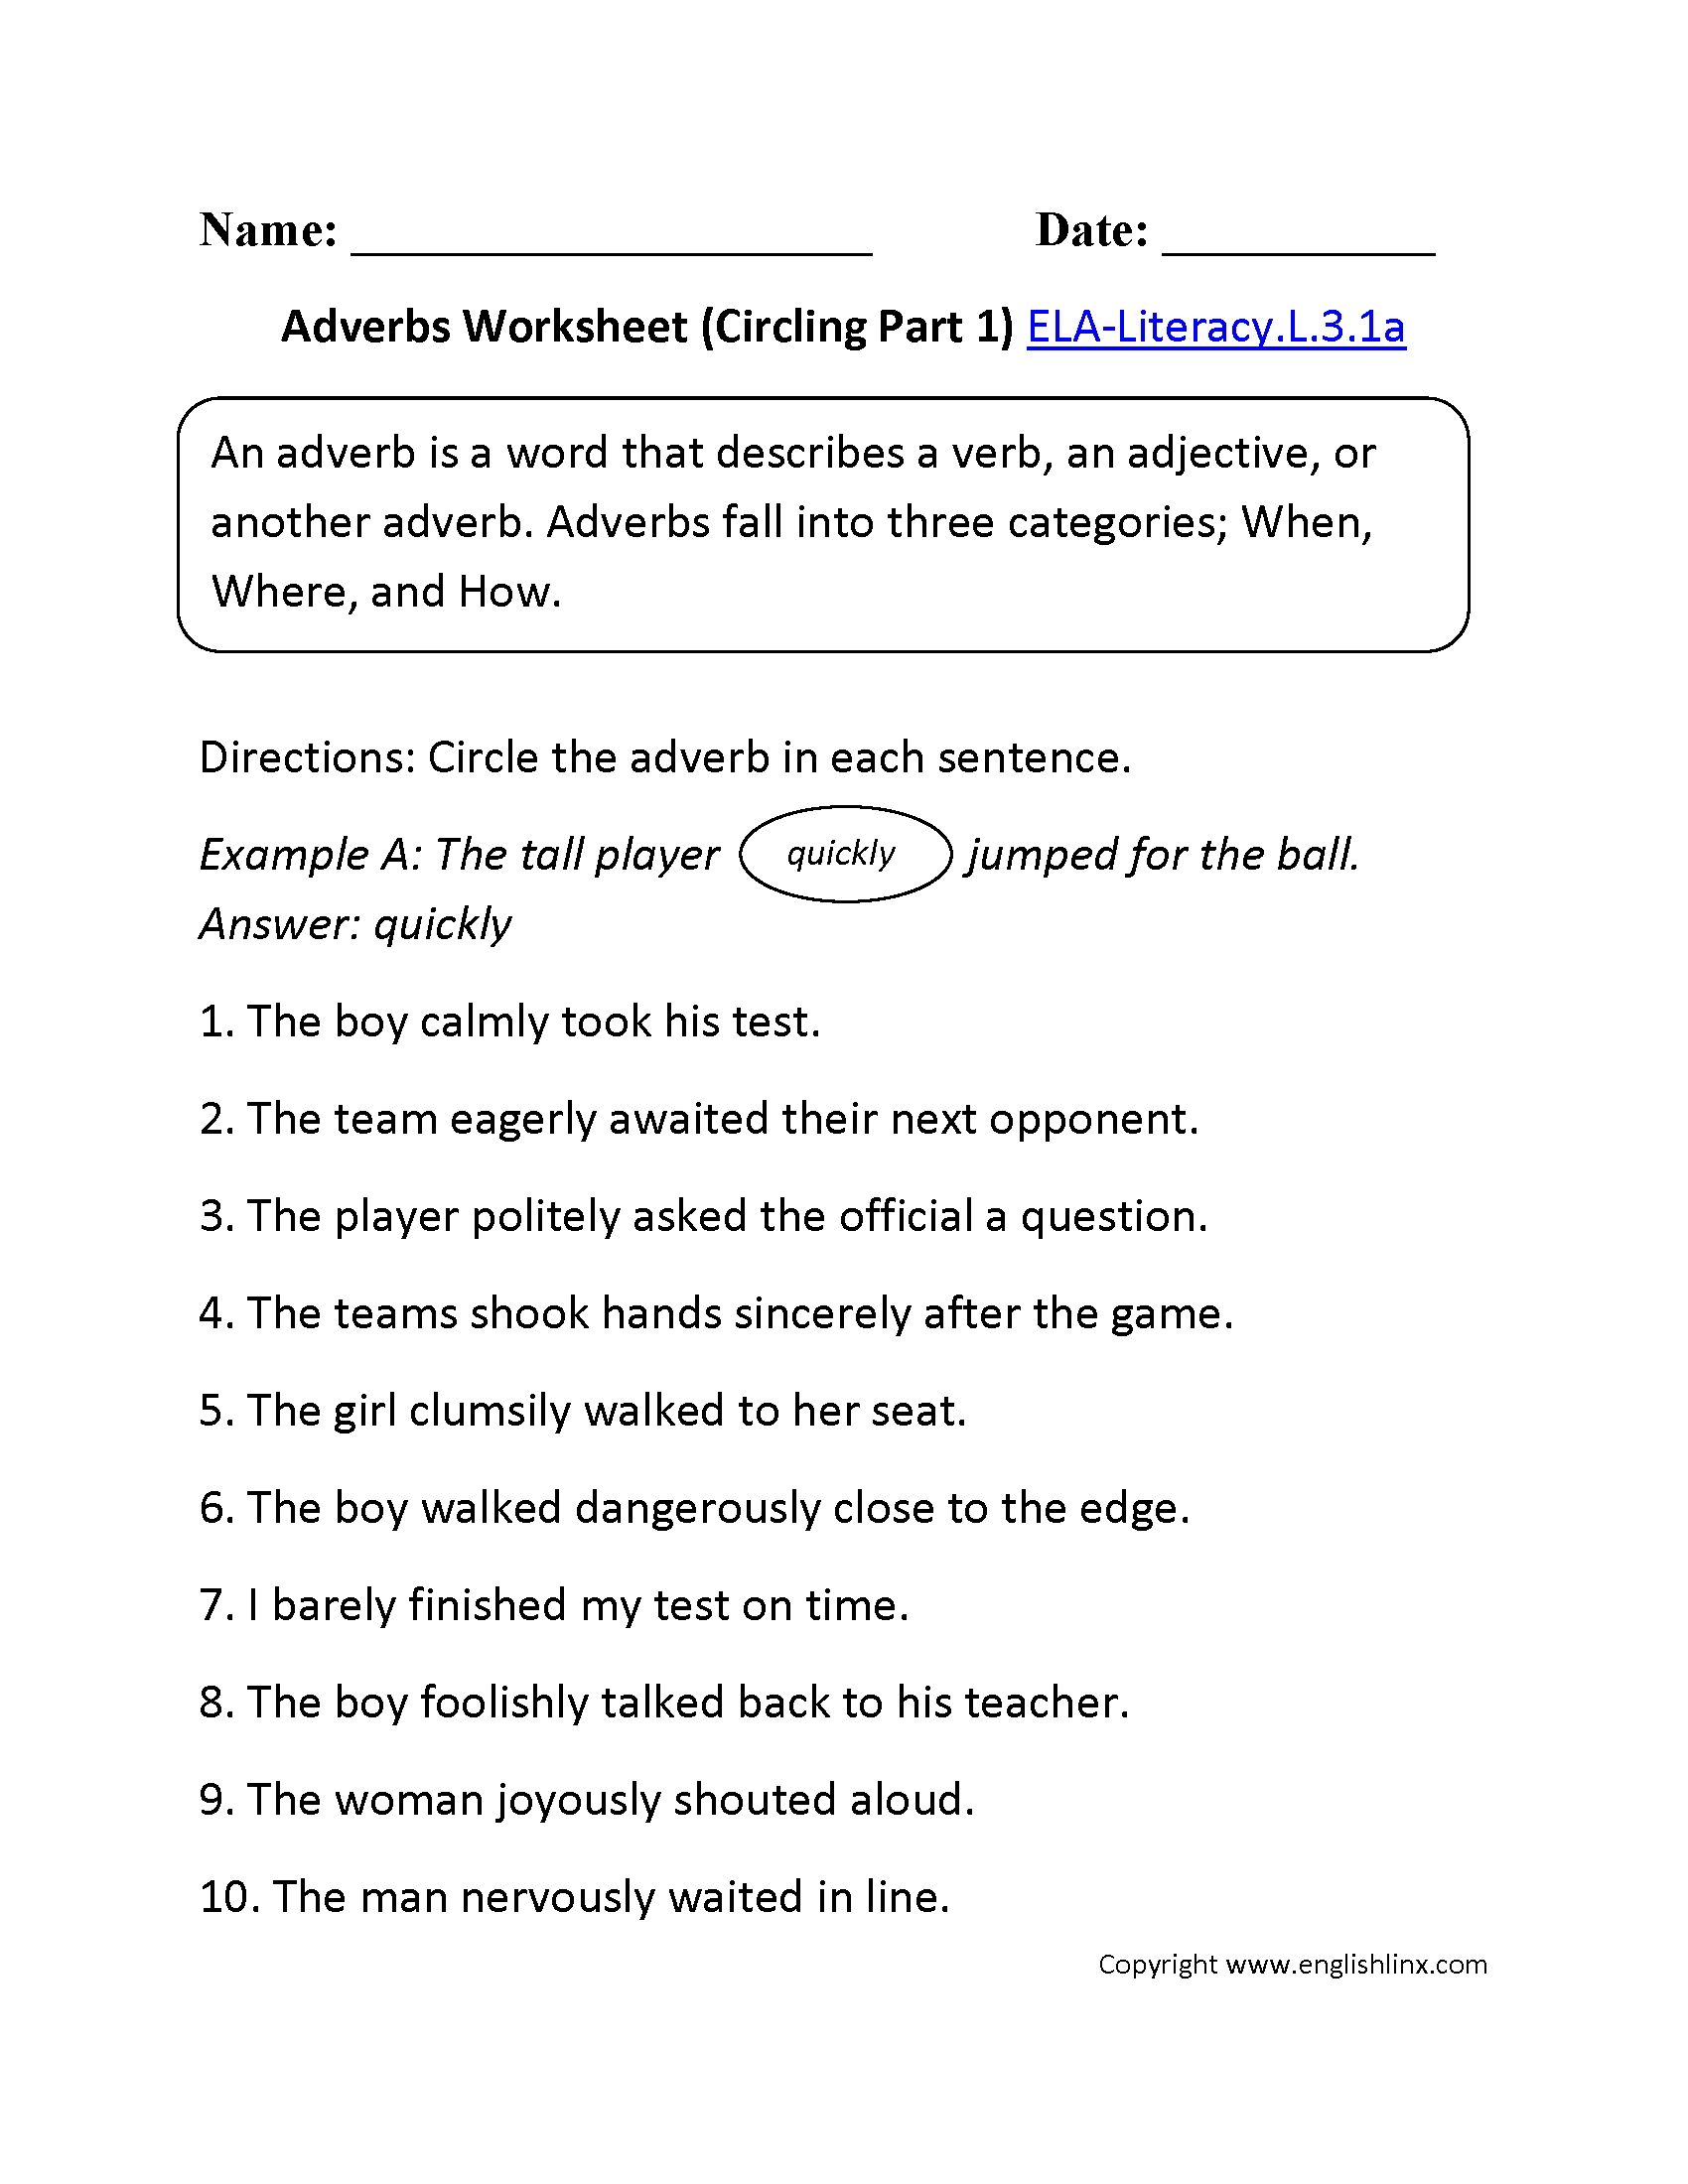 Adverbs Worksheet 1 ELA-Literacy.L.3.1a Language Worksheet